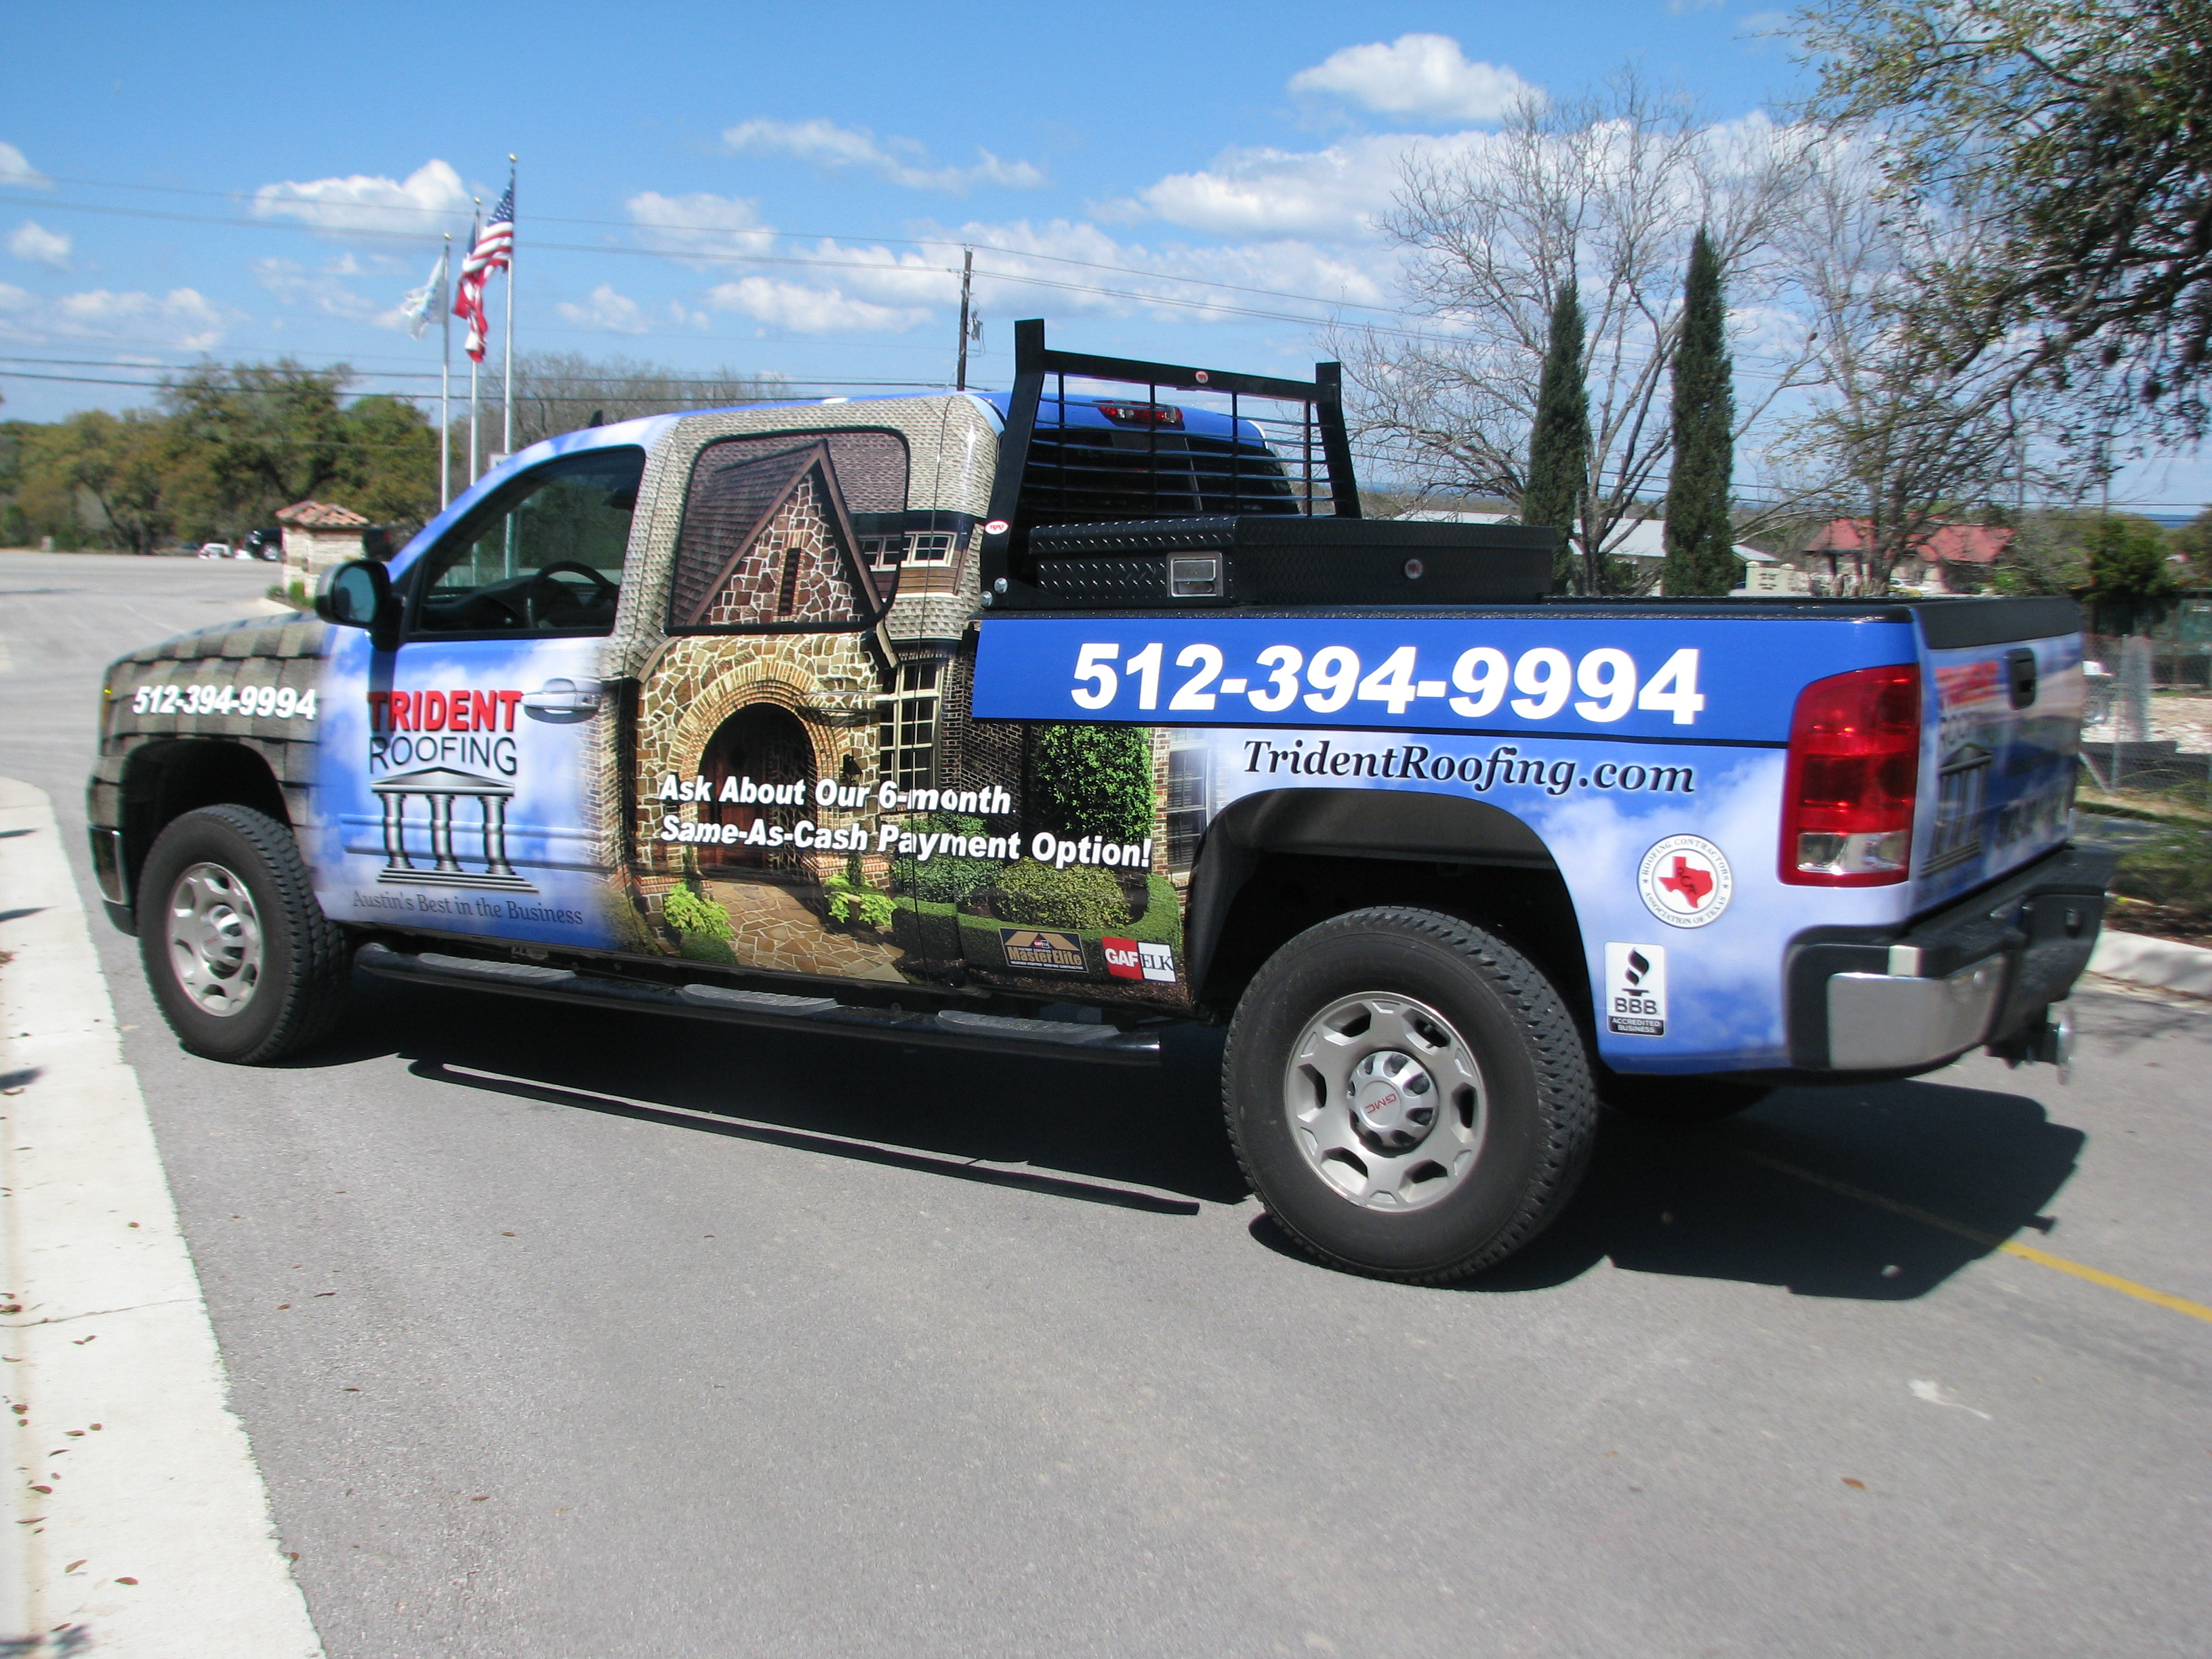 Trident Roofing Designed Truck Wrap